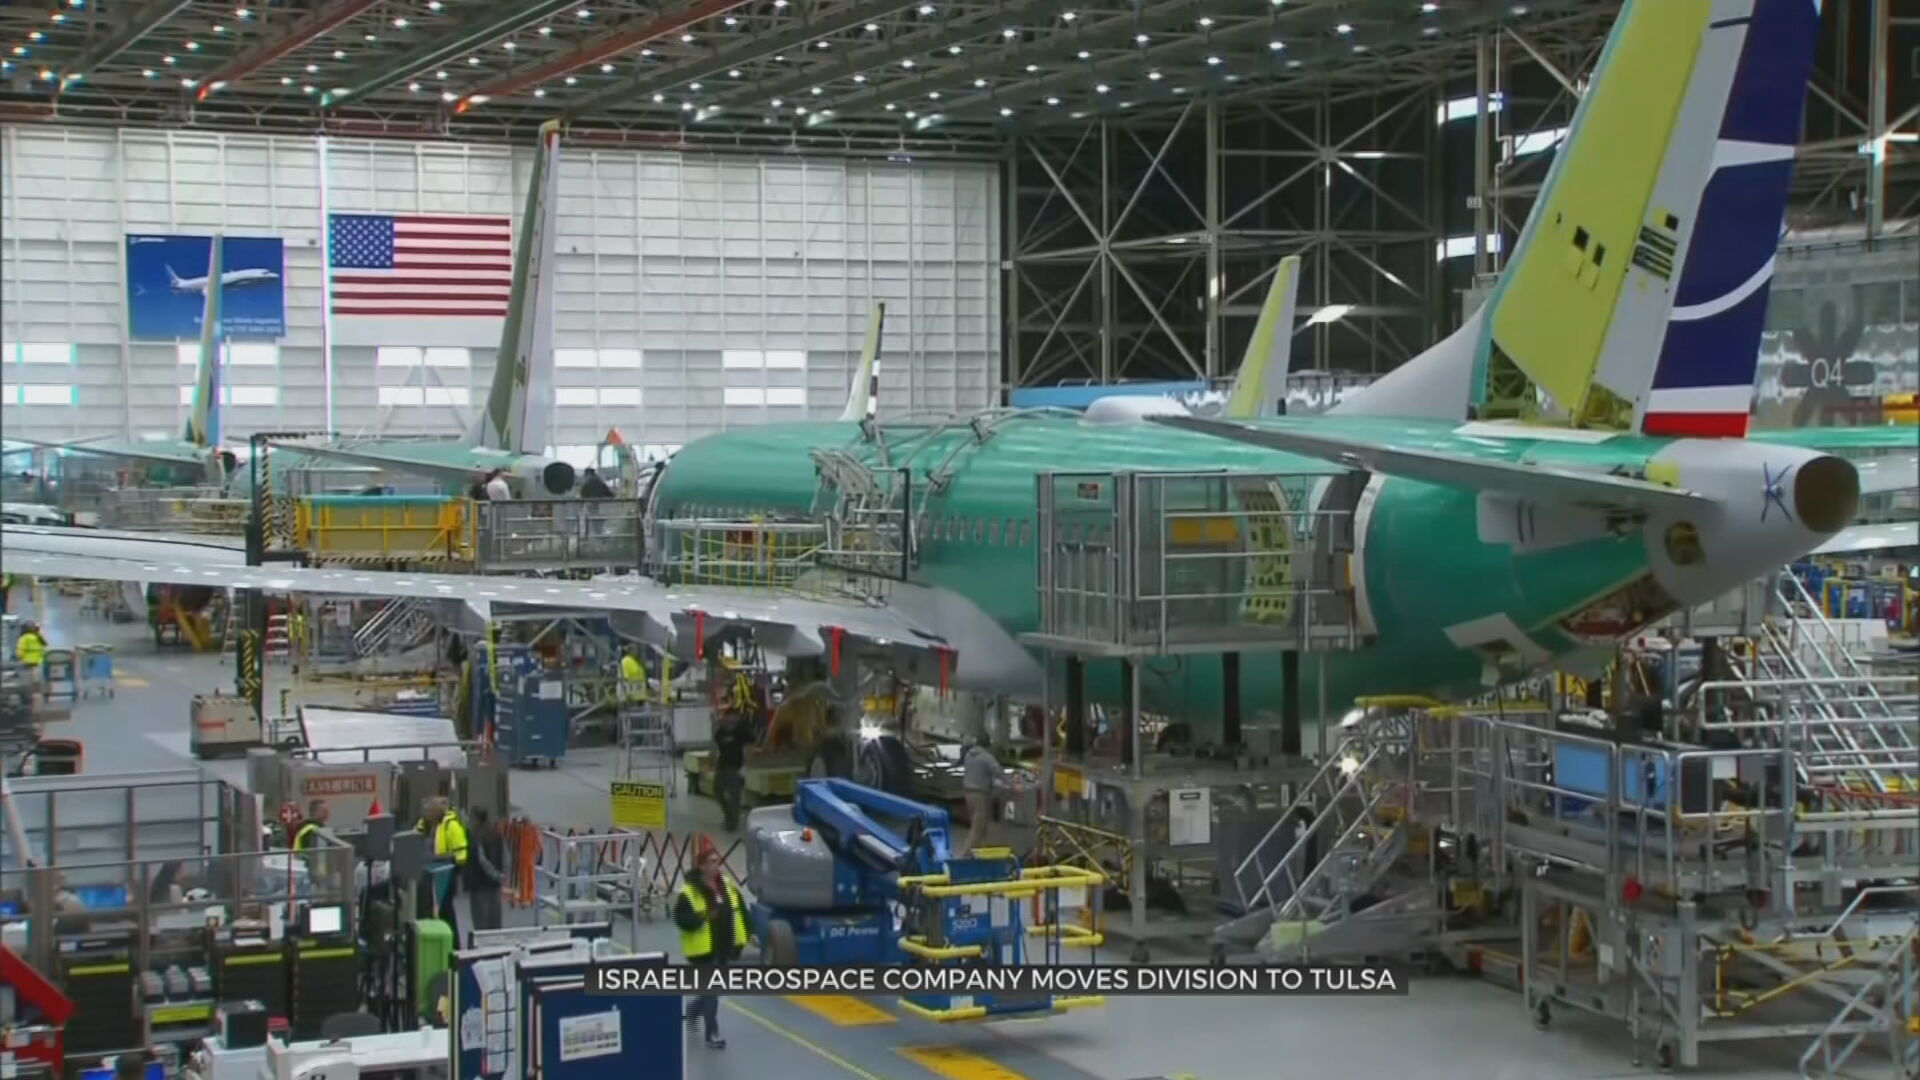 Aerospace Company To Move Manufacturing Line From Israel To Tulsa